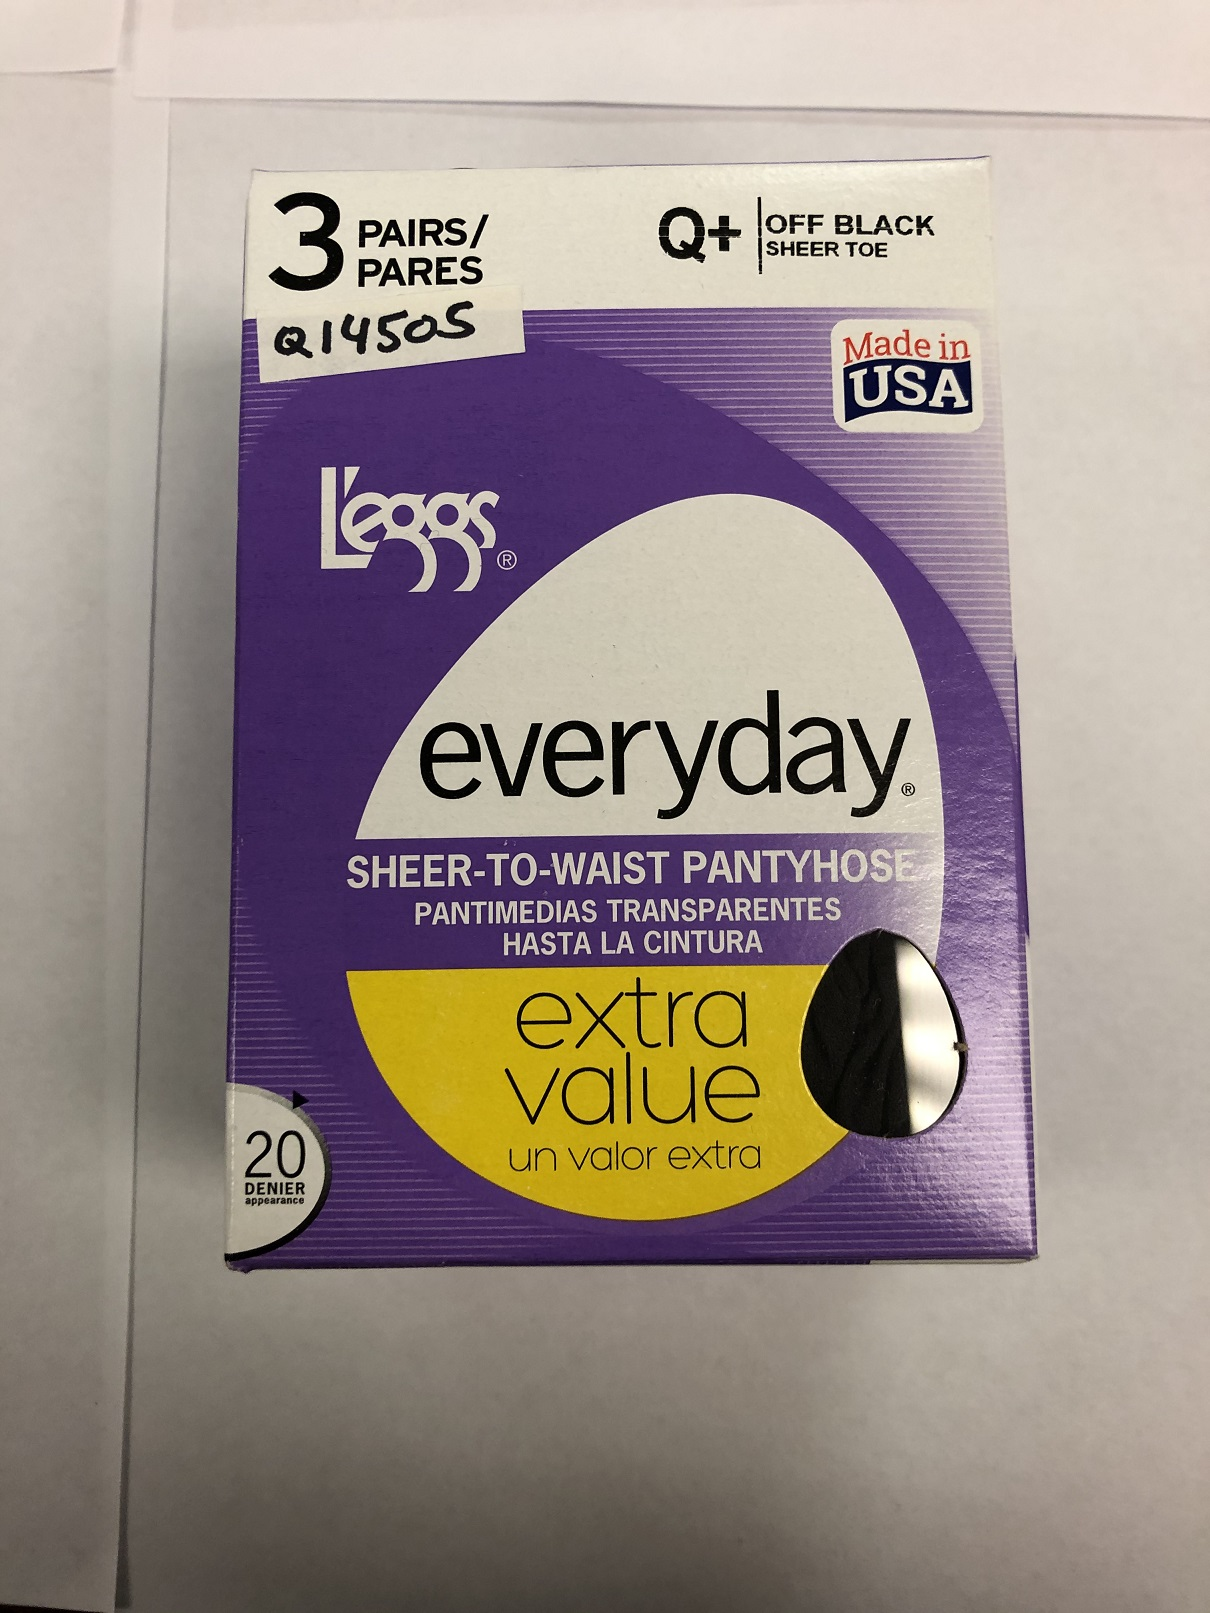 L'eggs Everyday Ultra Sheer Tights /3 PK 14505